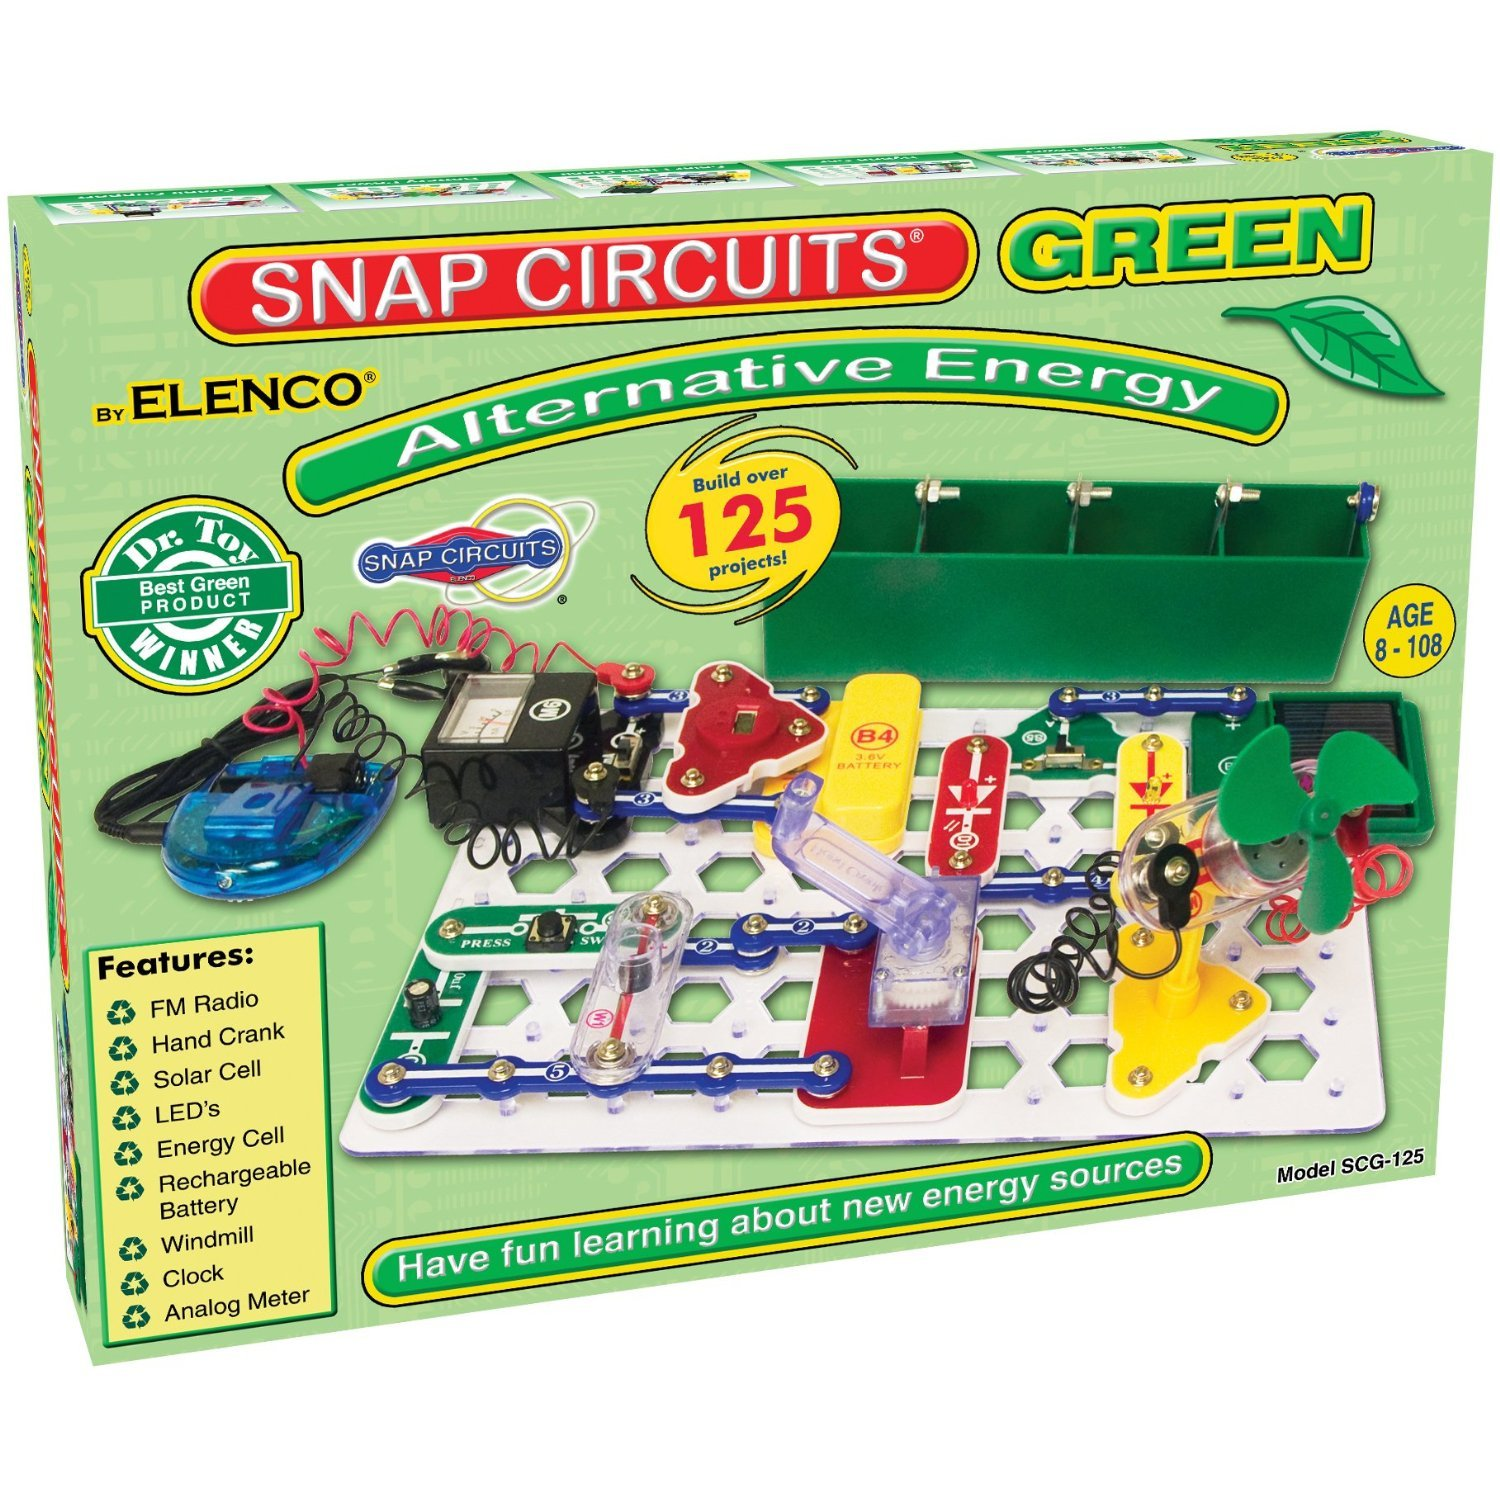 Snap Circuits Green Alternative Energy Electronics Exploration Kit | Over 125 STEM Projects | Full Color Project Manual | 40+ Snap Circuits Parts | STEM Educational Toys for Kids 8+ by Snap Circuits